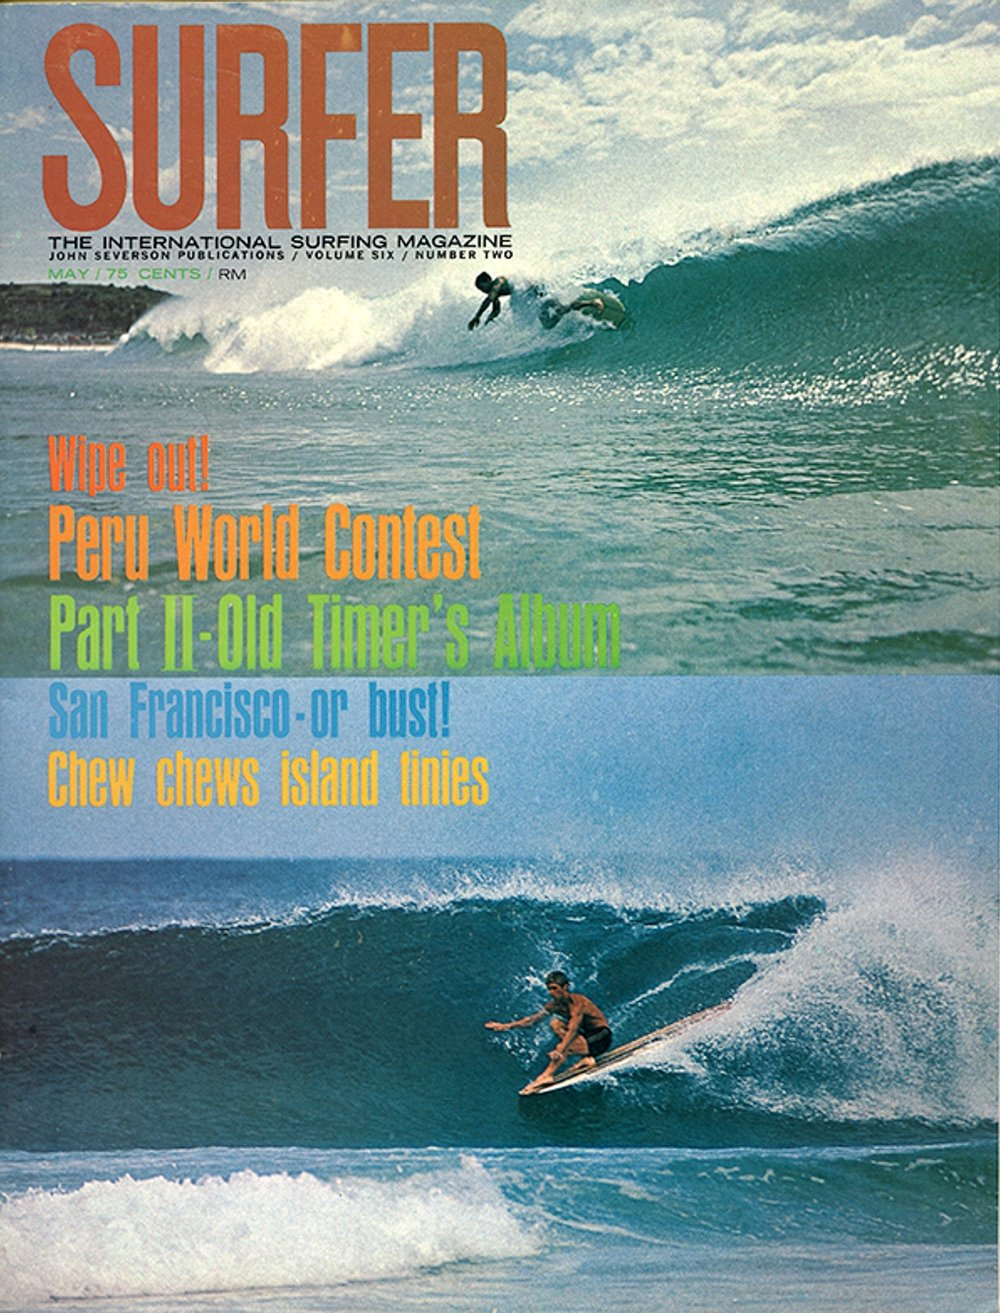 SURFER MAG 1965 MAY COVER - RICH CHEW